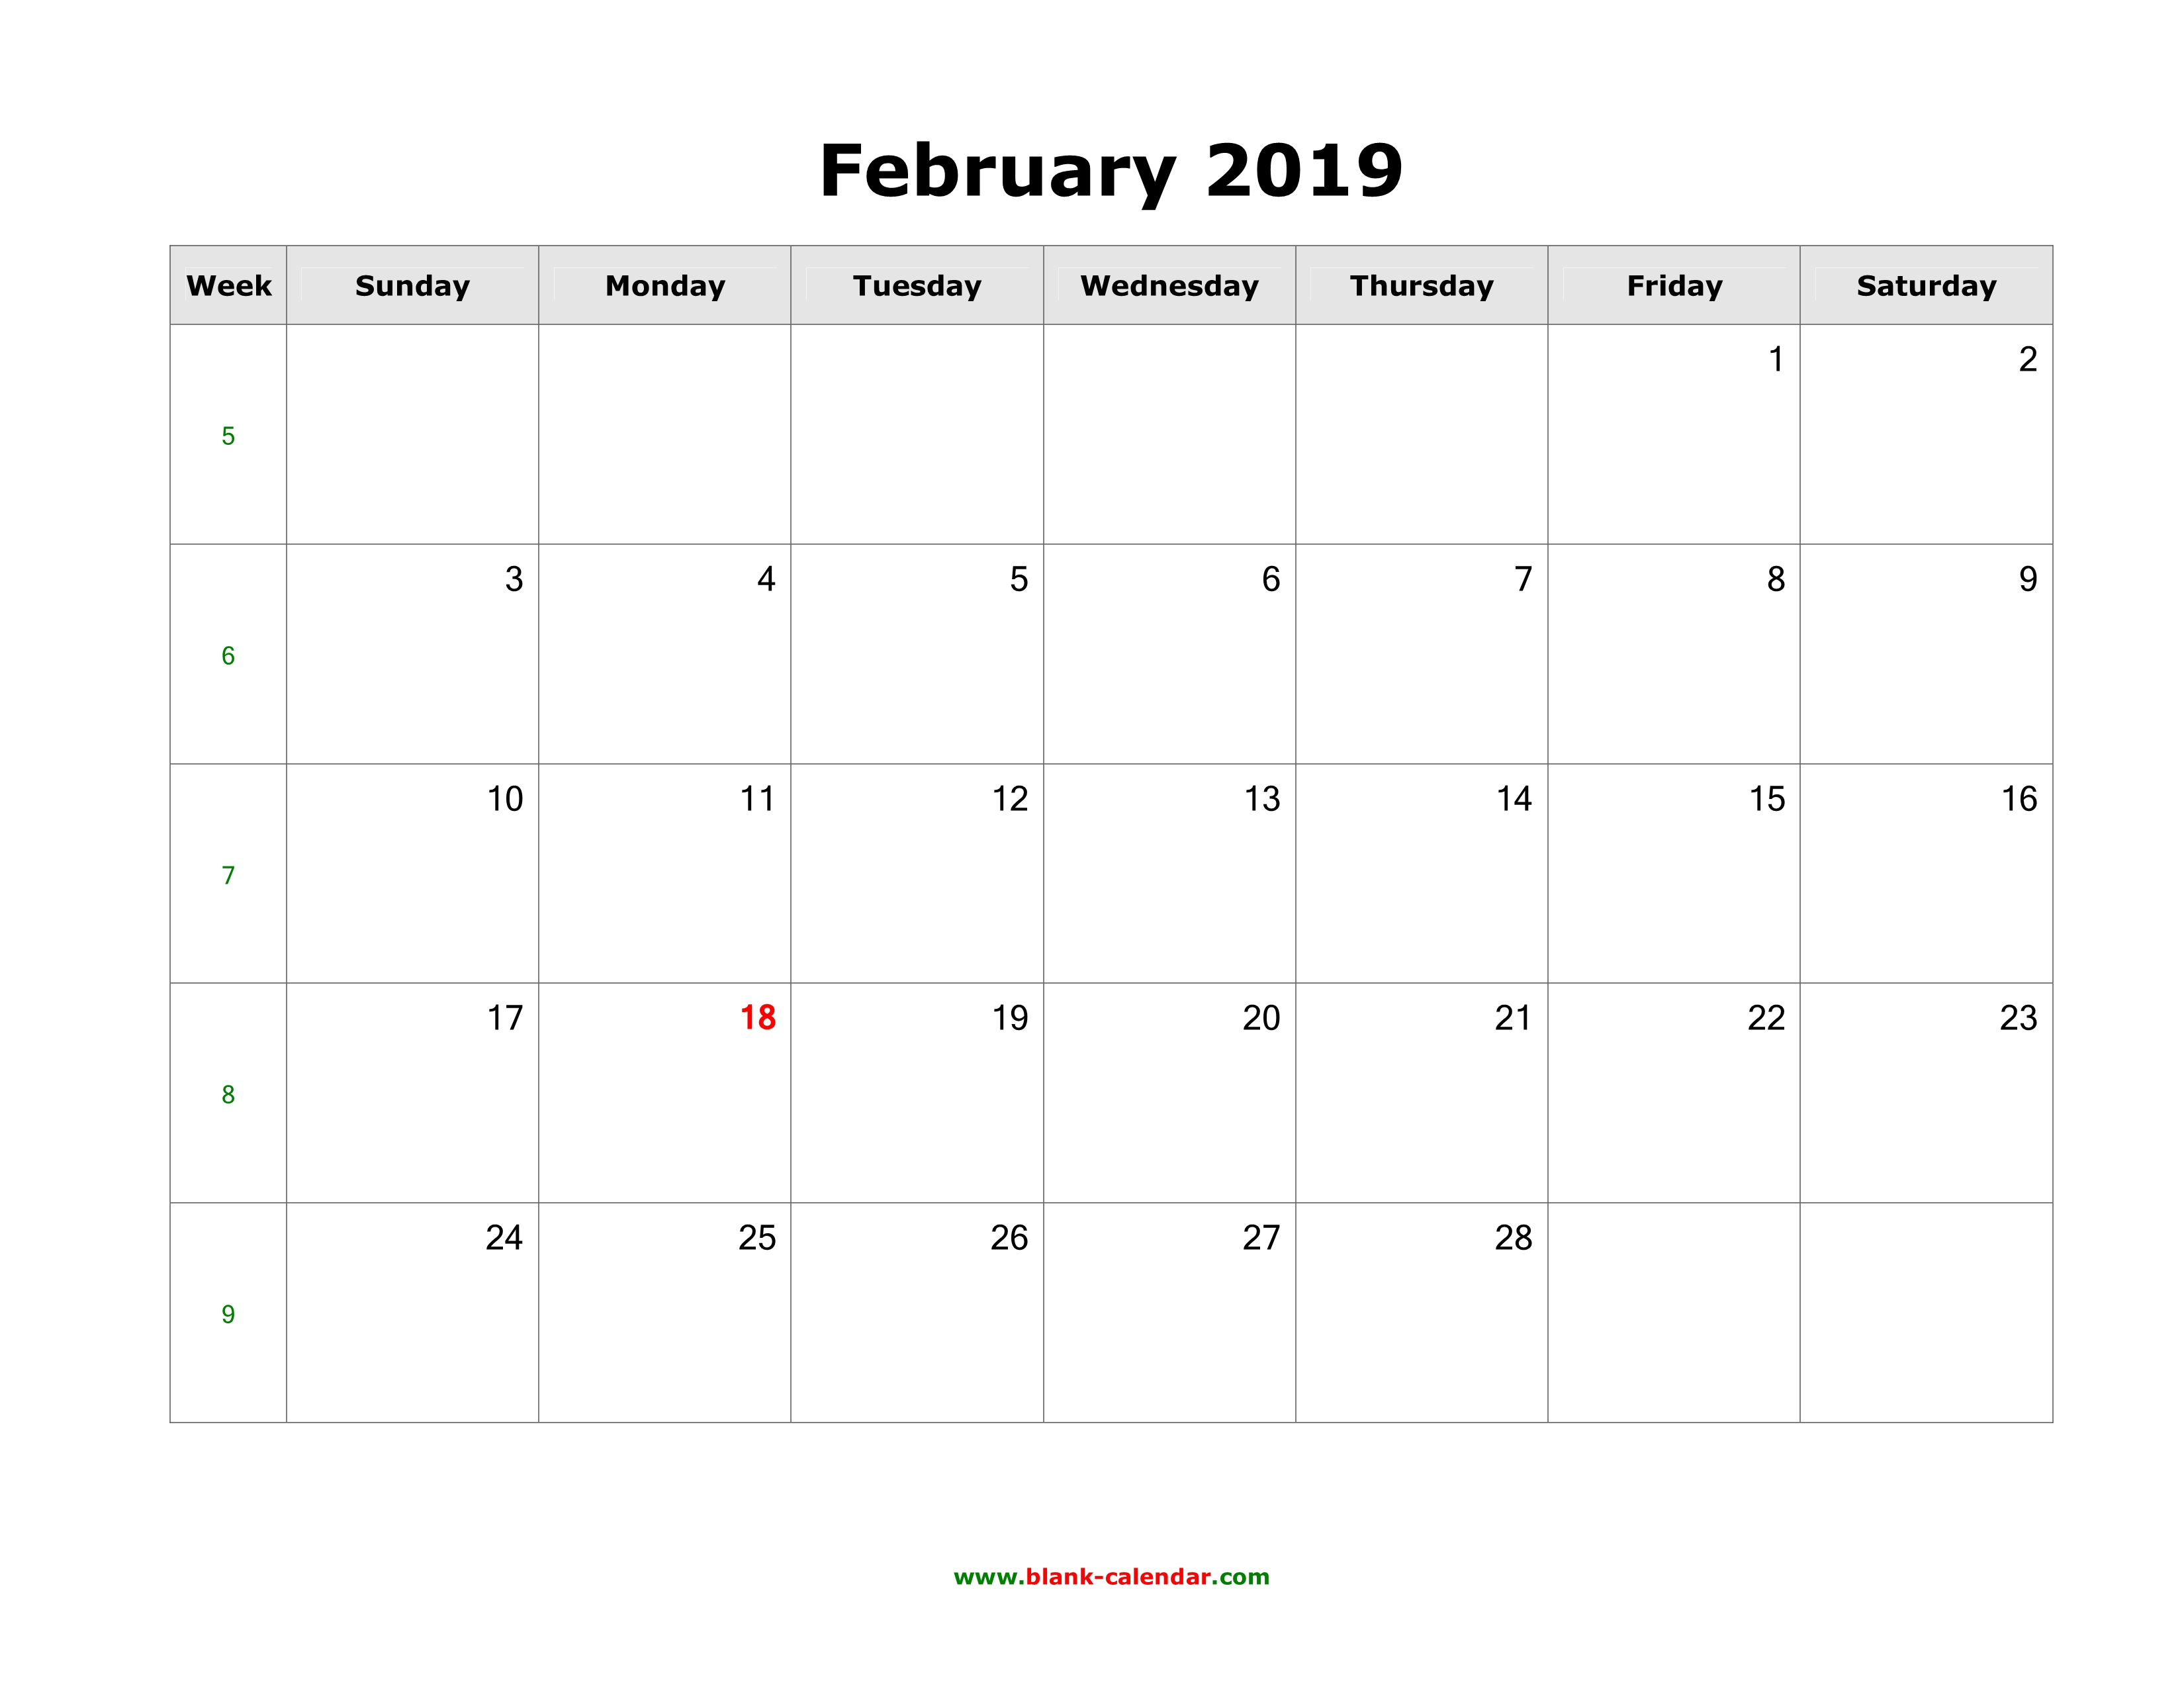 Download February 2019 Blank Calendar Horizontal